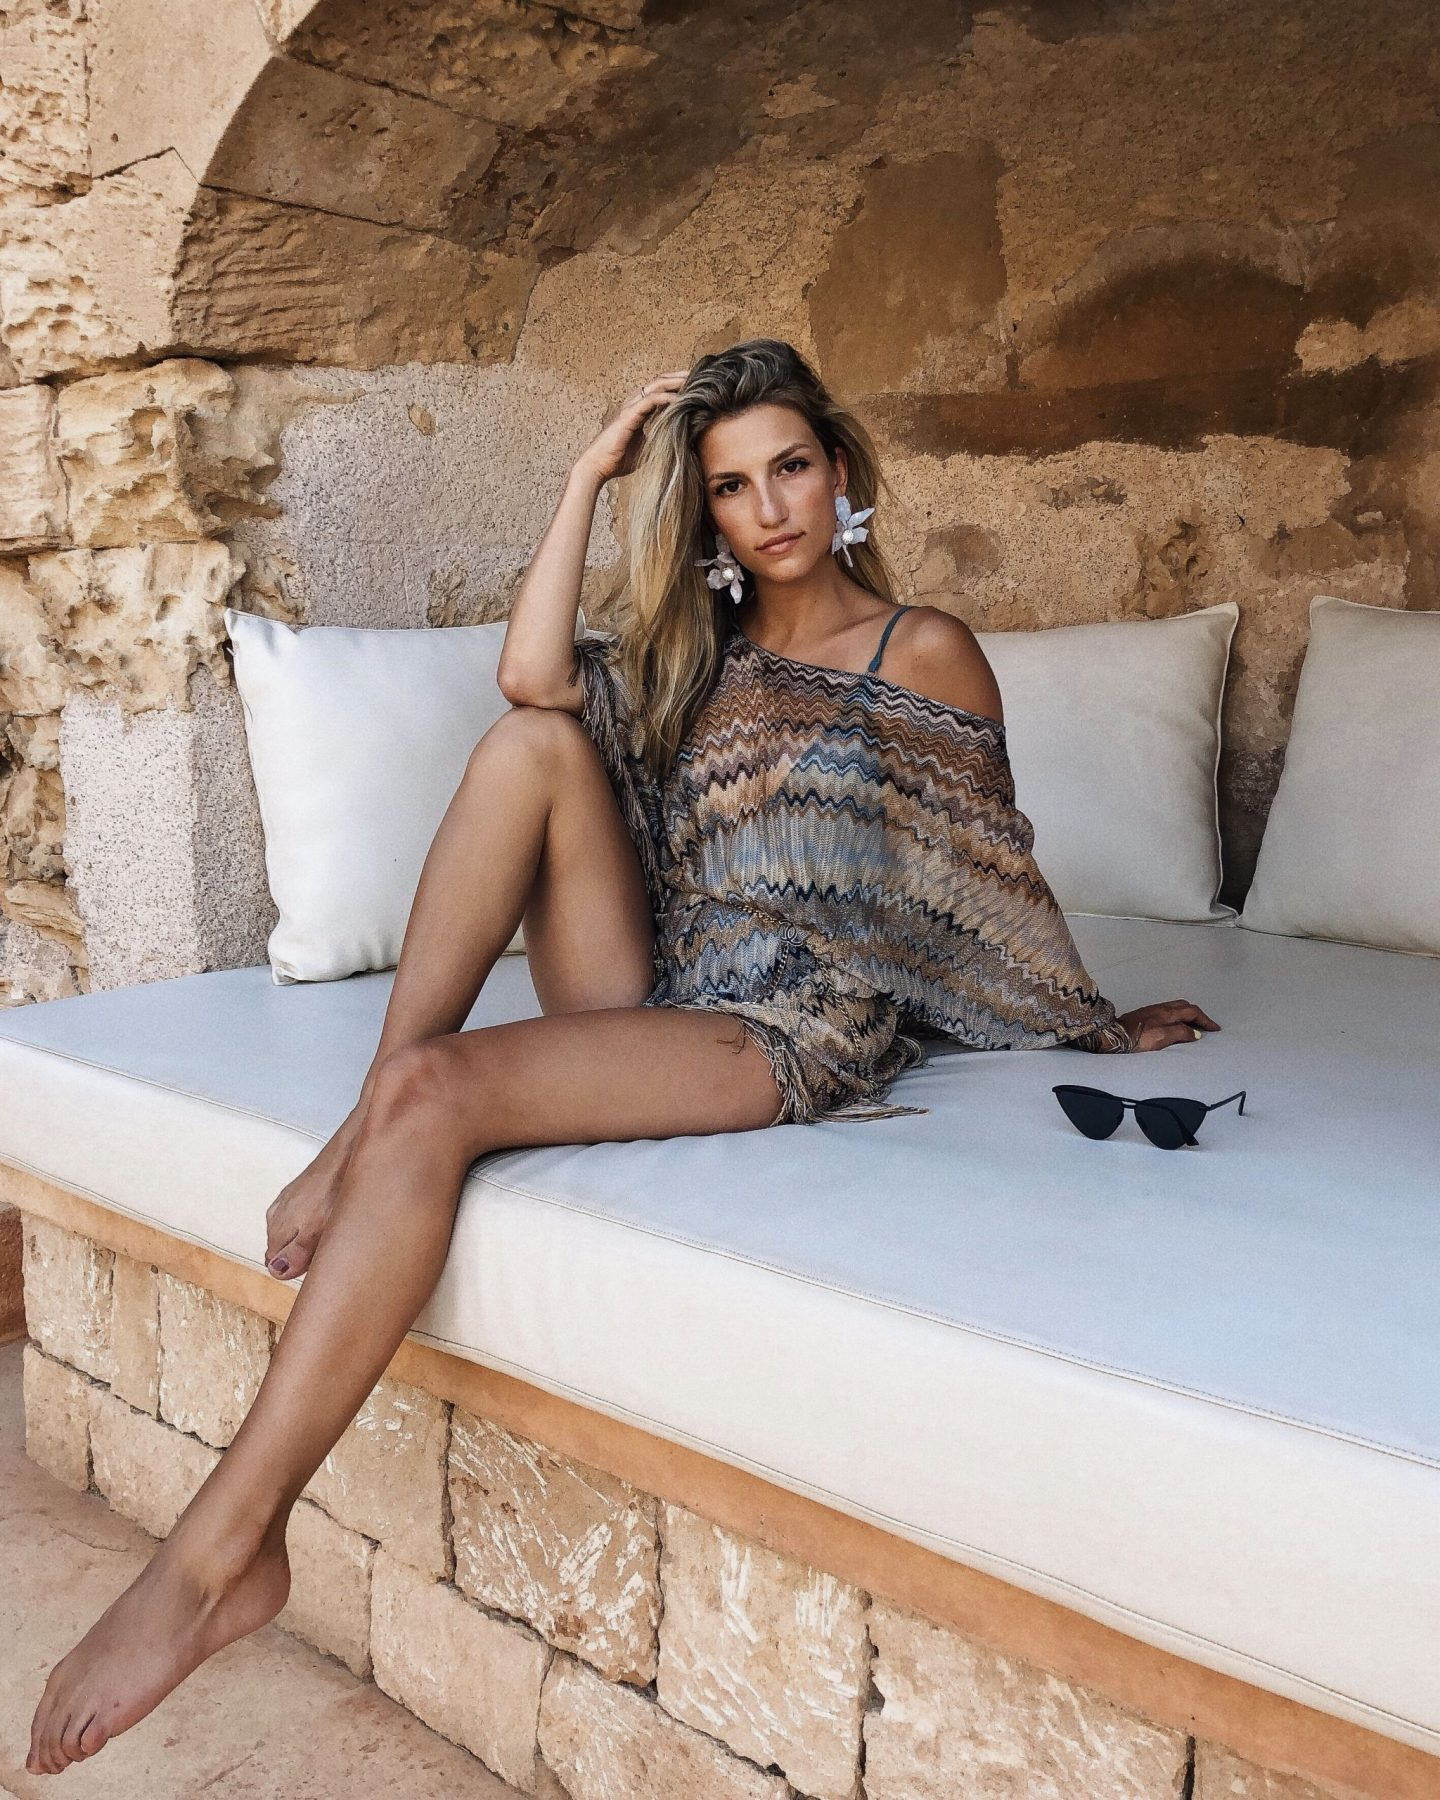 Cassandra DiMicco, Cass DiMicco, Dressed For Dreams, NYC, New York City, New York, Street Style NYC, Street Style 2018, NYC Street Style Street Style Outfits, 2018 Trends, Summer Style, Summer Outfit Inspo, Europe Outfit Inspo, NYC Fashion BloggerCassandra DiMicco, Cass DiMicco, Dressed For Dreams, NYC, New York City, New York, Street Style NYC, Street Style 2018, NYC Street Style Street Style Outfits, 2018 Trends, Summer Style, Summer Outfit Inspo, Europe Outfit Inspo, NYC Fashion Blogger, Lele Sadoughi Crystal Lily Earrings, Lele Sadoughi, Missoni Poncho, Missoni, Le Specs, Le Specs Echo Butterfly, Chanel Chain Belt, Mallorca, Mallorca Spain, Mallorca Outfit Inspo, Mallorca Inspo, Mallorca Vacation